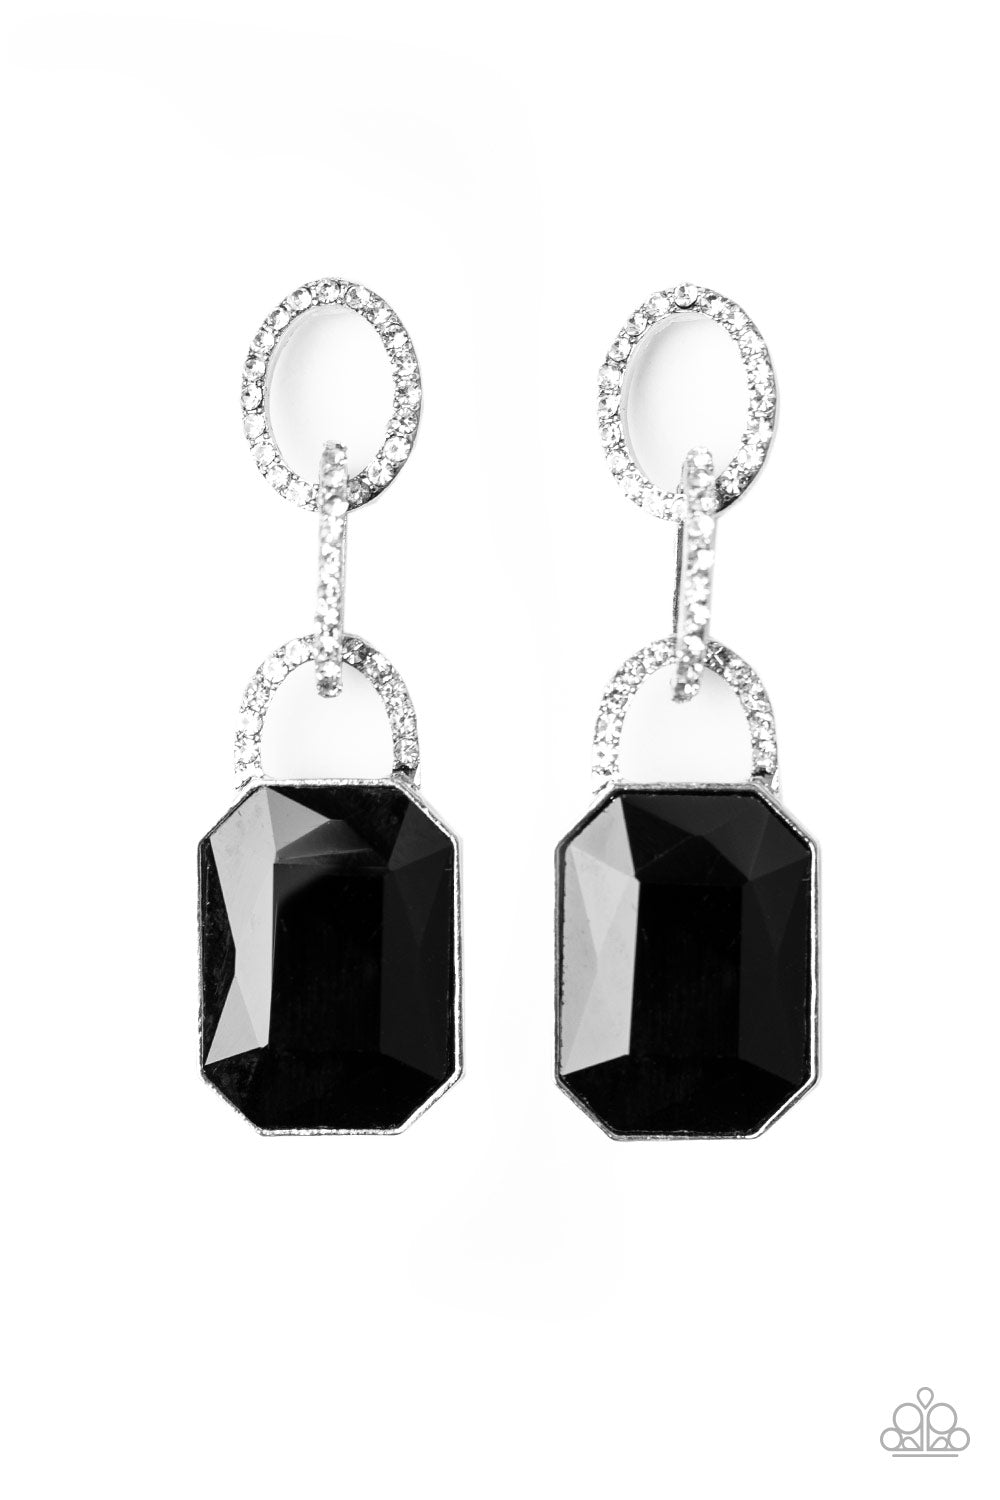 Superstar Status Black Earrings Paparazzi Accessories